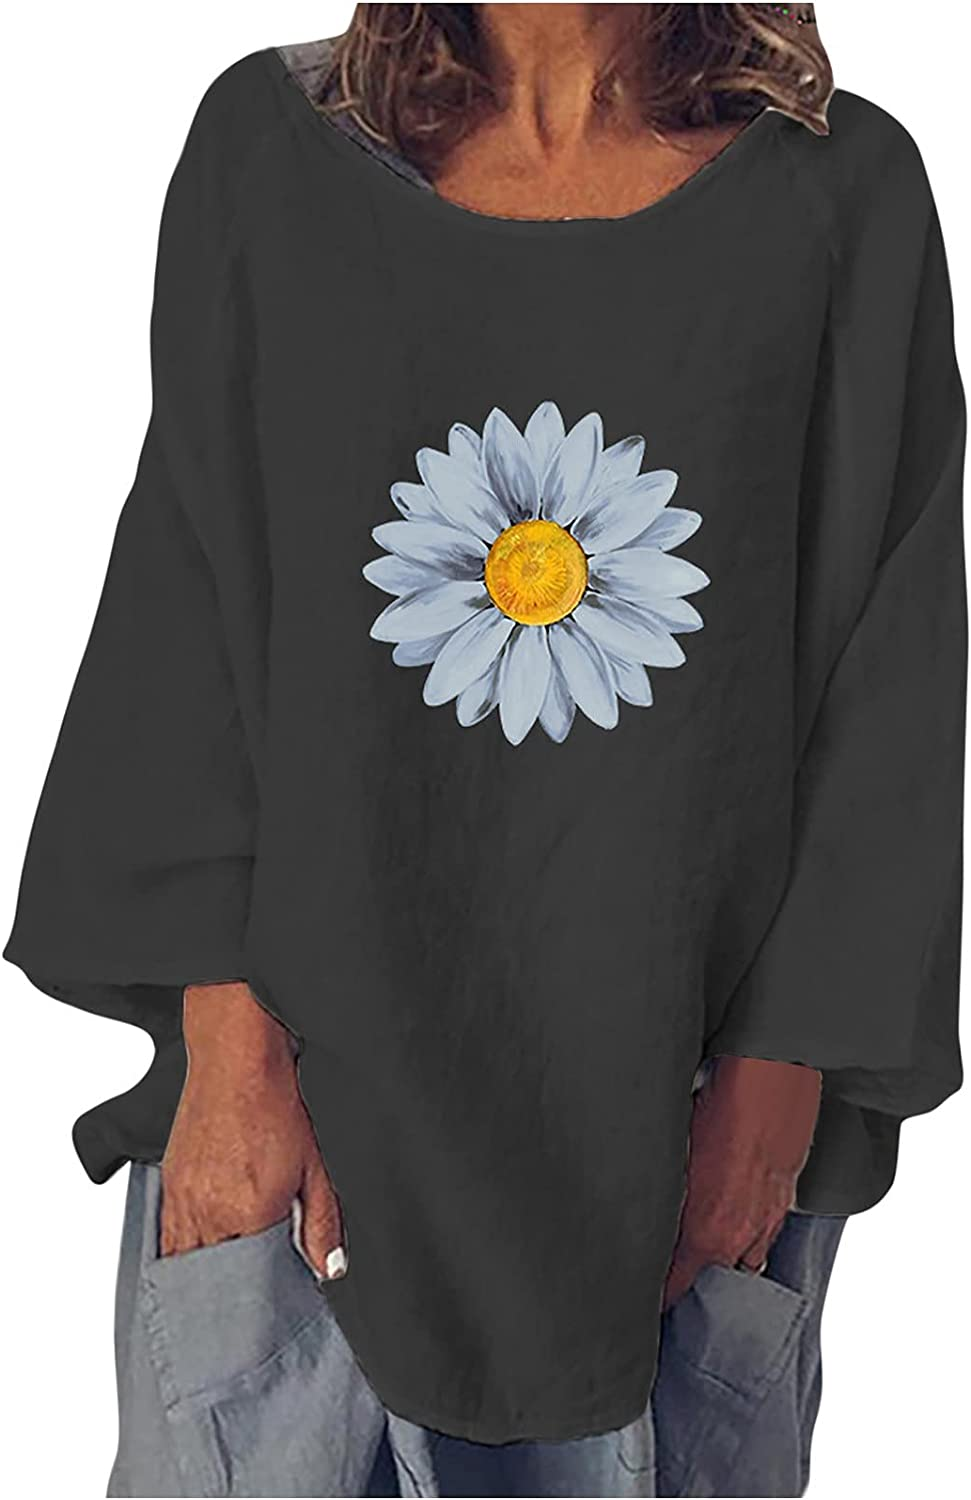 Women's O Neck Sunflower Print Blouse Tops Autumn Long Sleeve T-Shirt Tops Casual Loose Comfortable Tunic Tee Tops